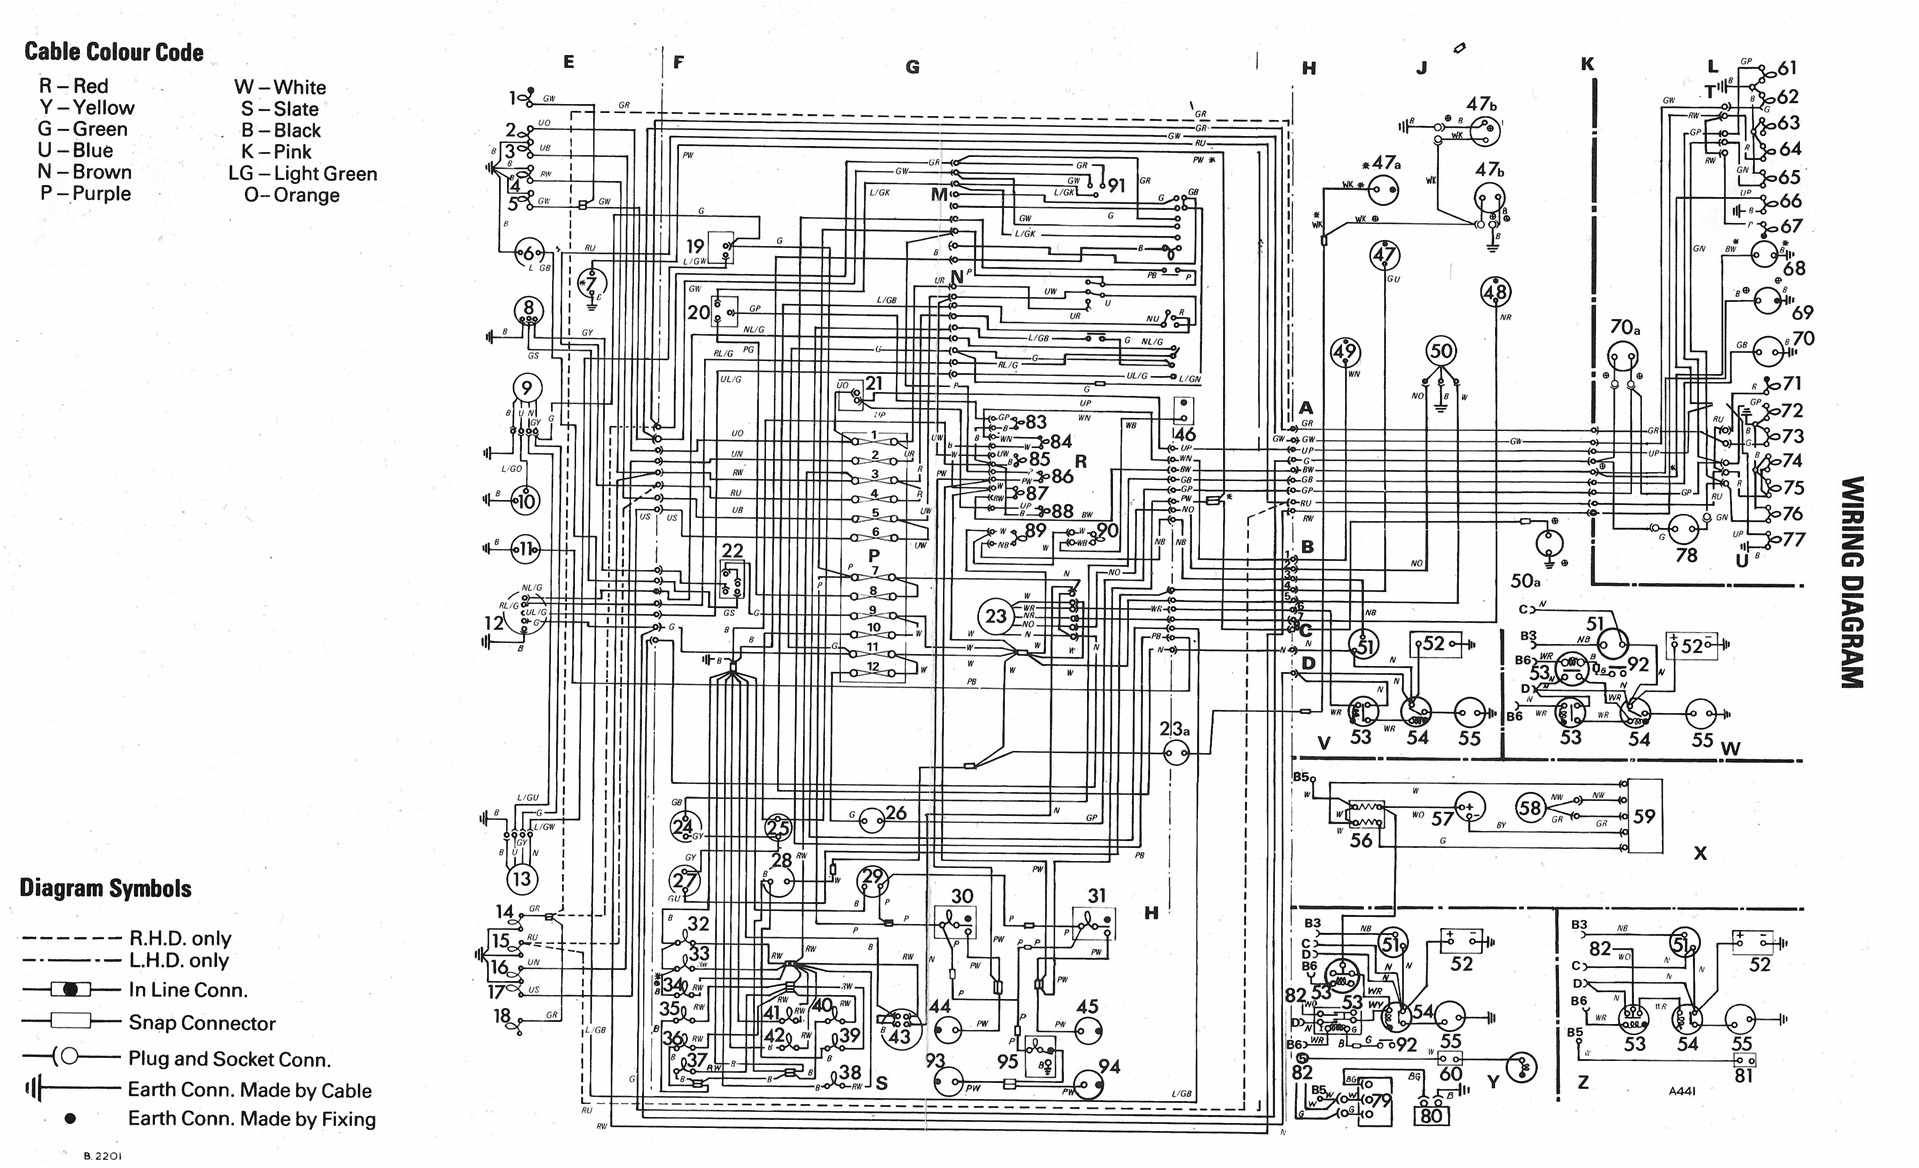 Vw Golf Gti Mk1 Wiring Diagram VW Golf GTI MK6 VW Golf GTI Stanced VW Golf R32 Volkswagen GTI VW Golf vs Polo